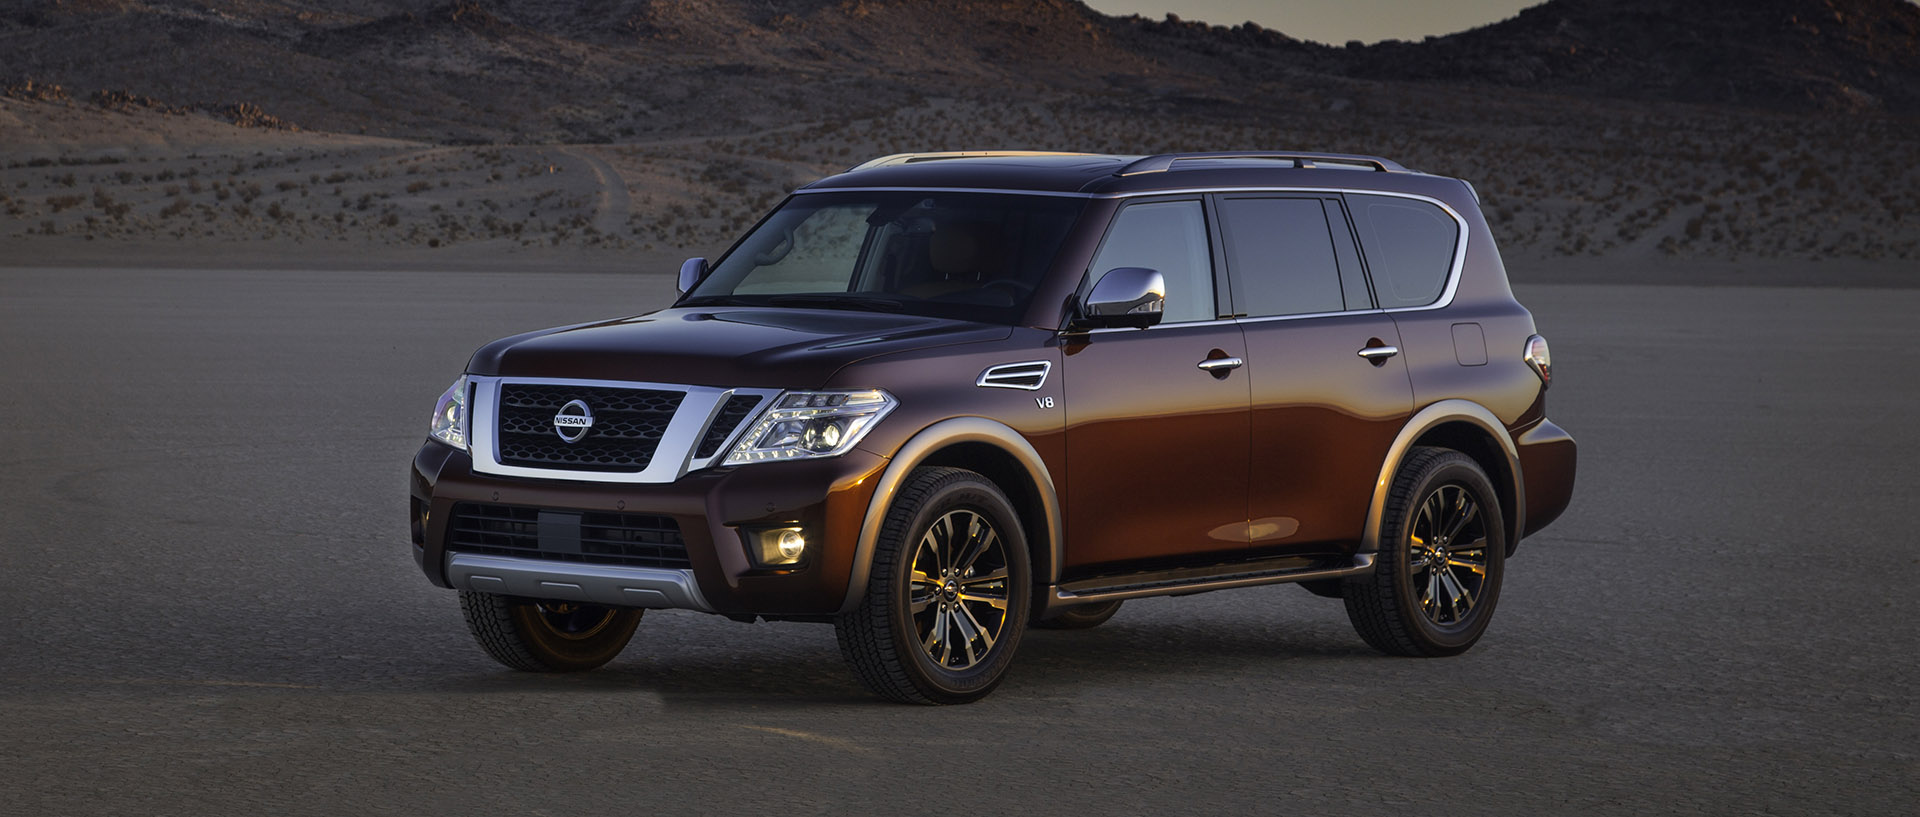 2017 nissan armada gets a full size update consumer reports. Black Bedroom Furniture Sets. Home Design Ideas